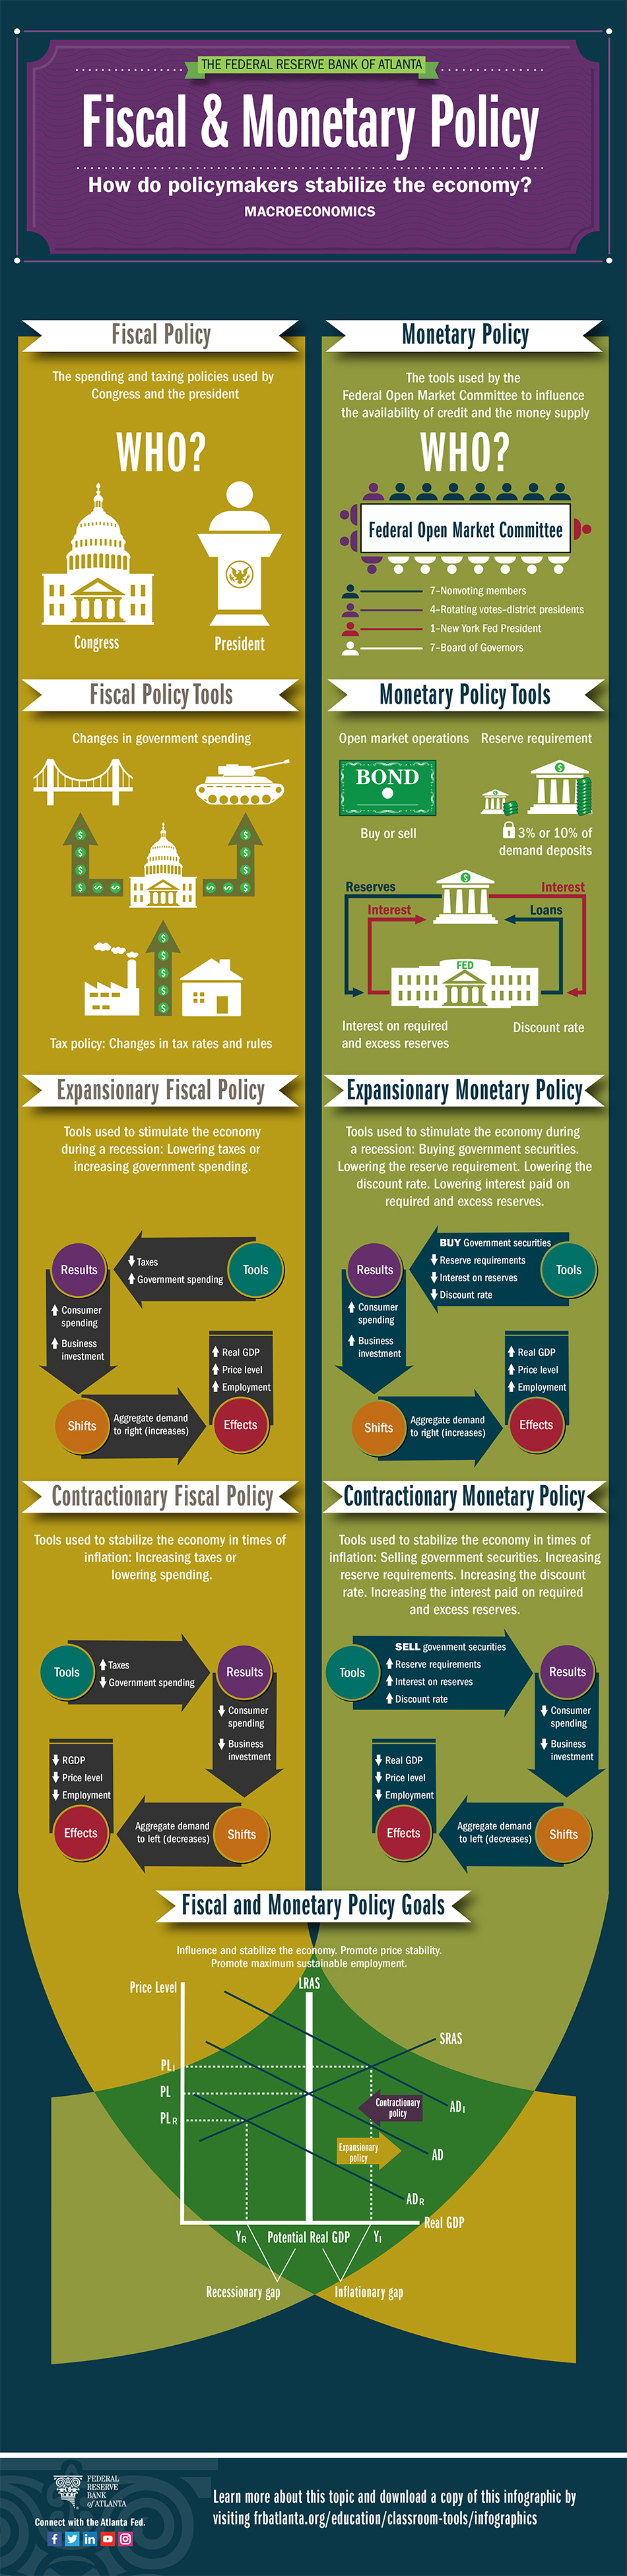 fiscal and monetary policy definition